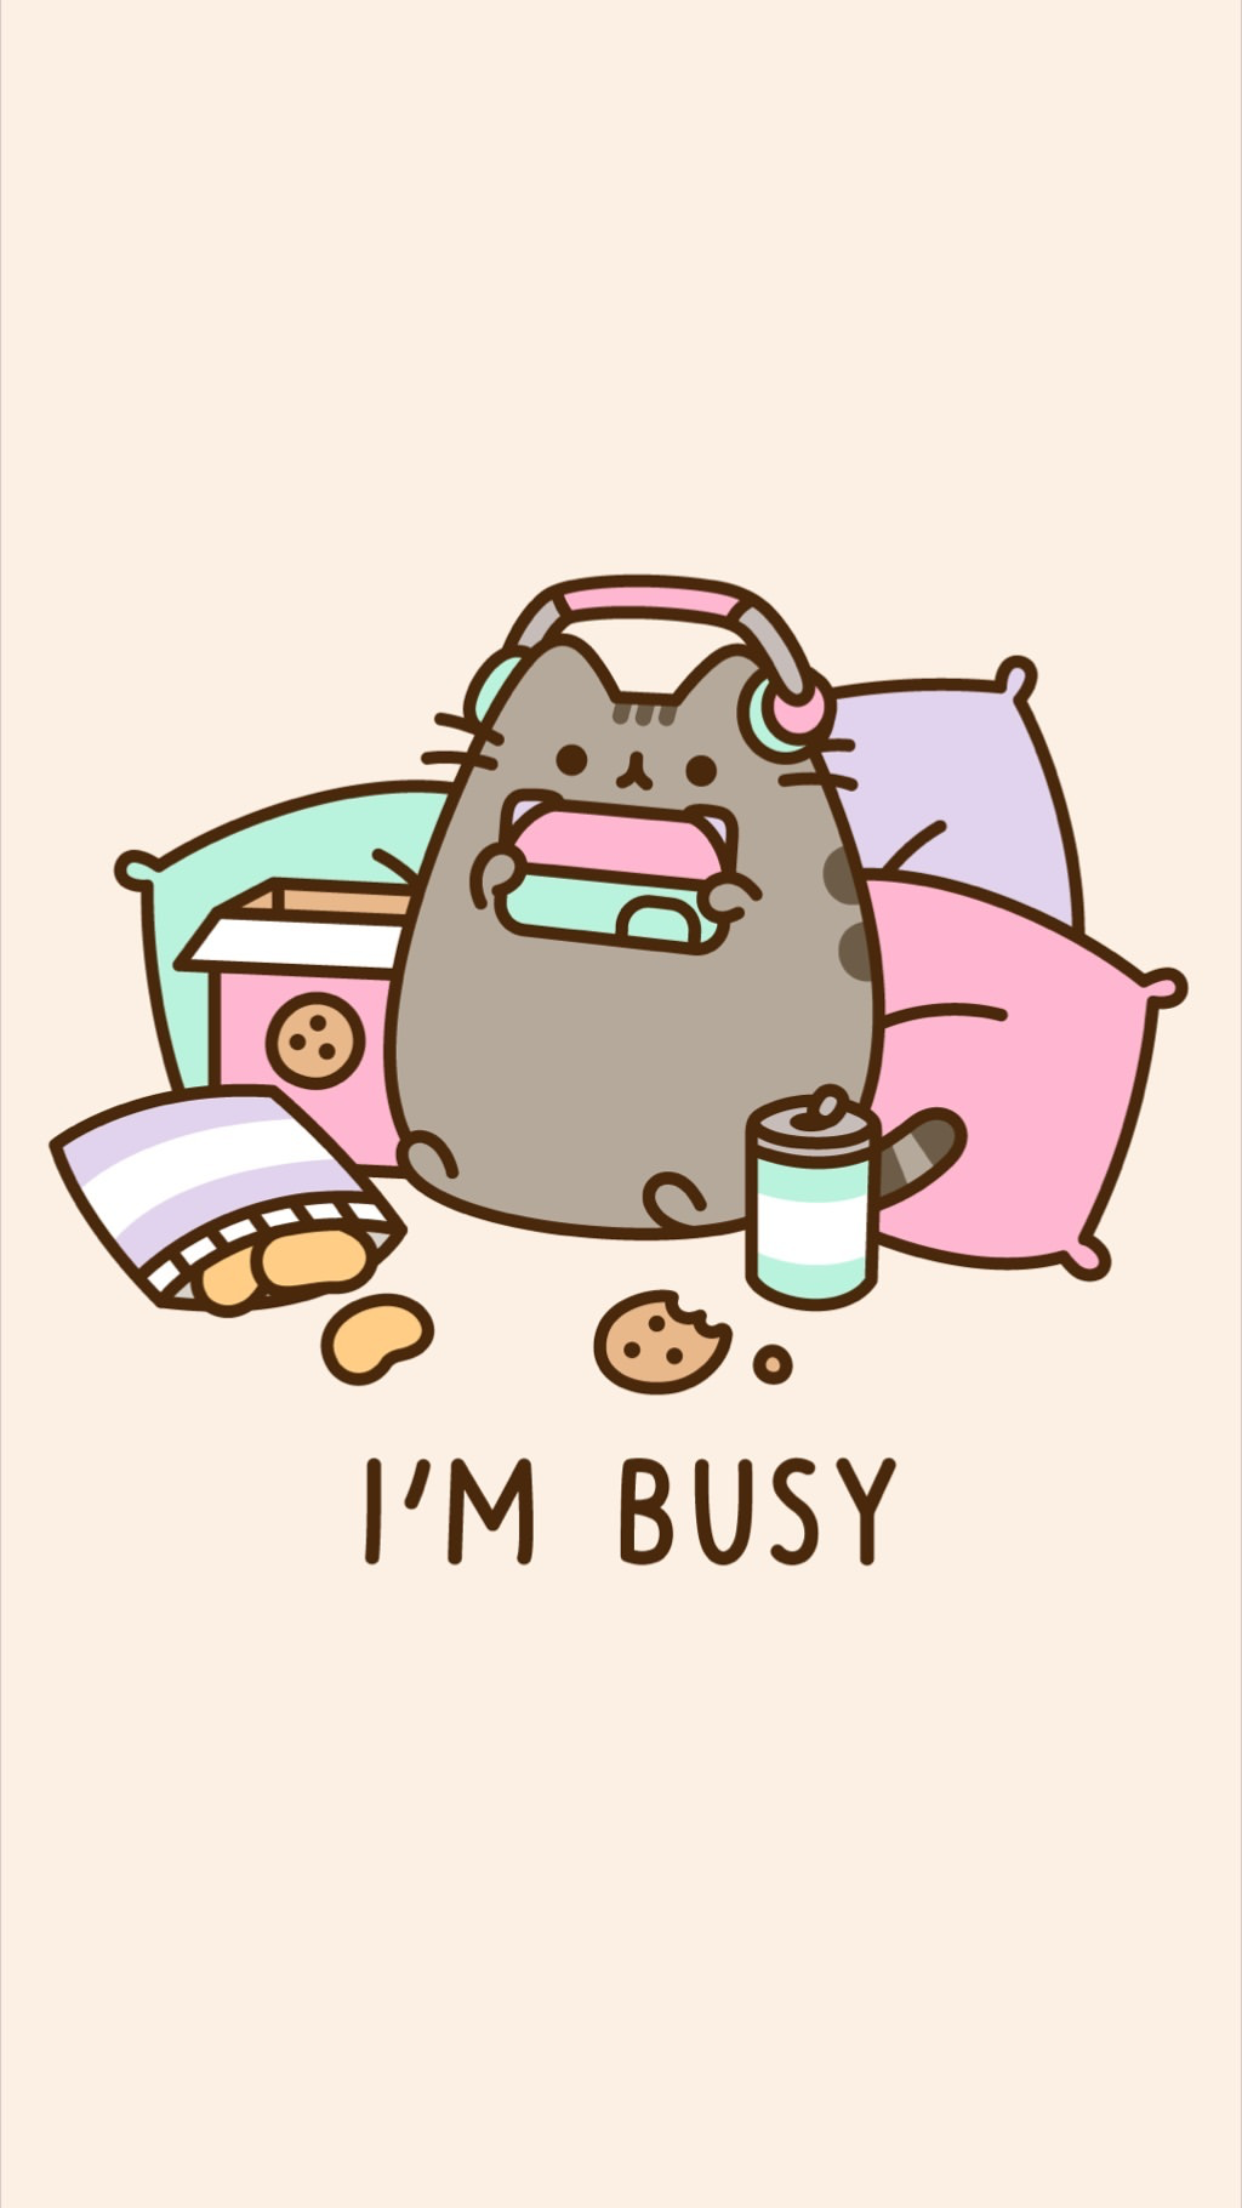 Don't bother me, I'm busy. Lol. Pusheen is so